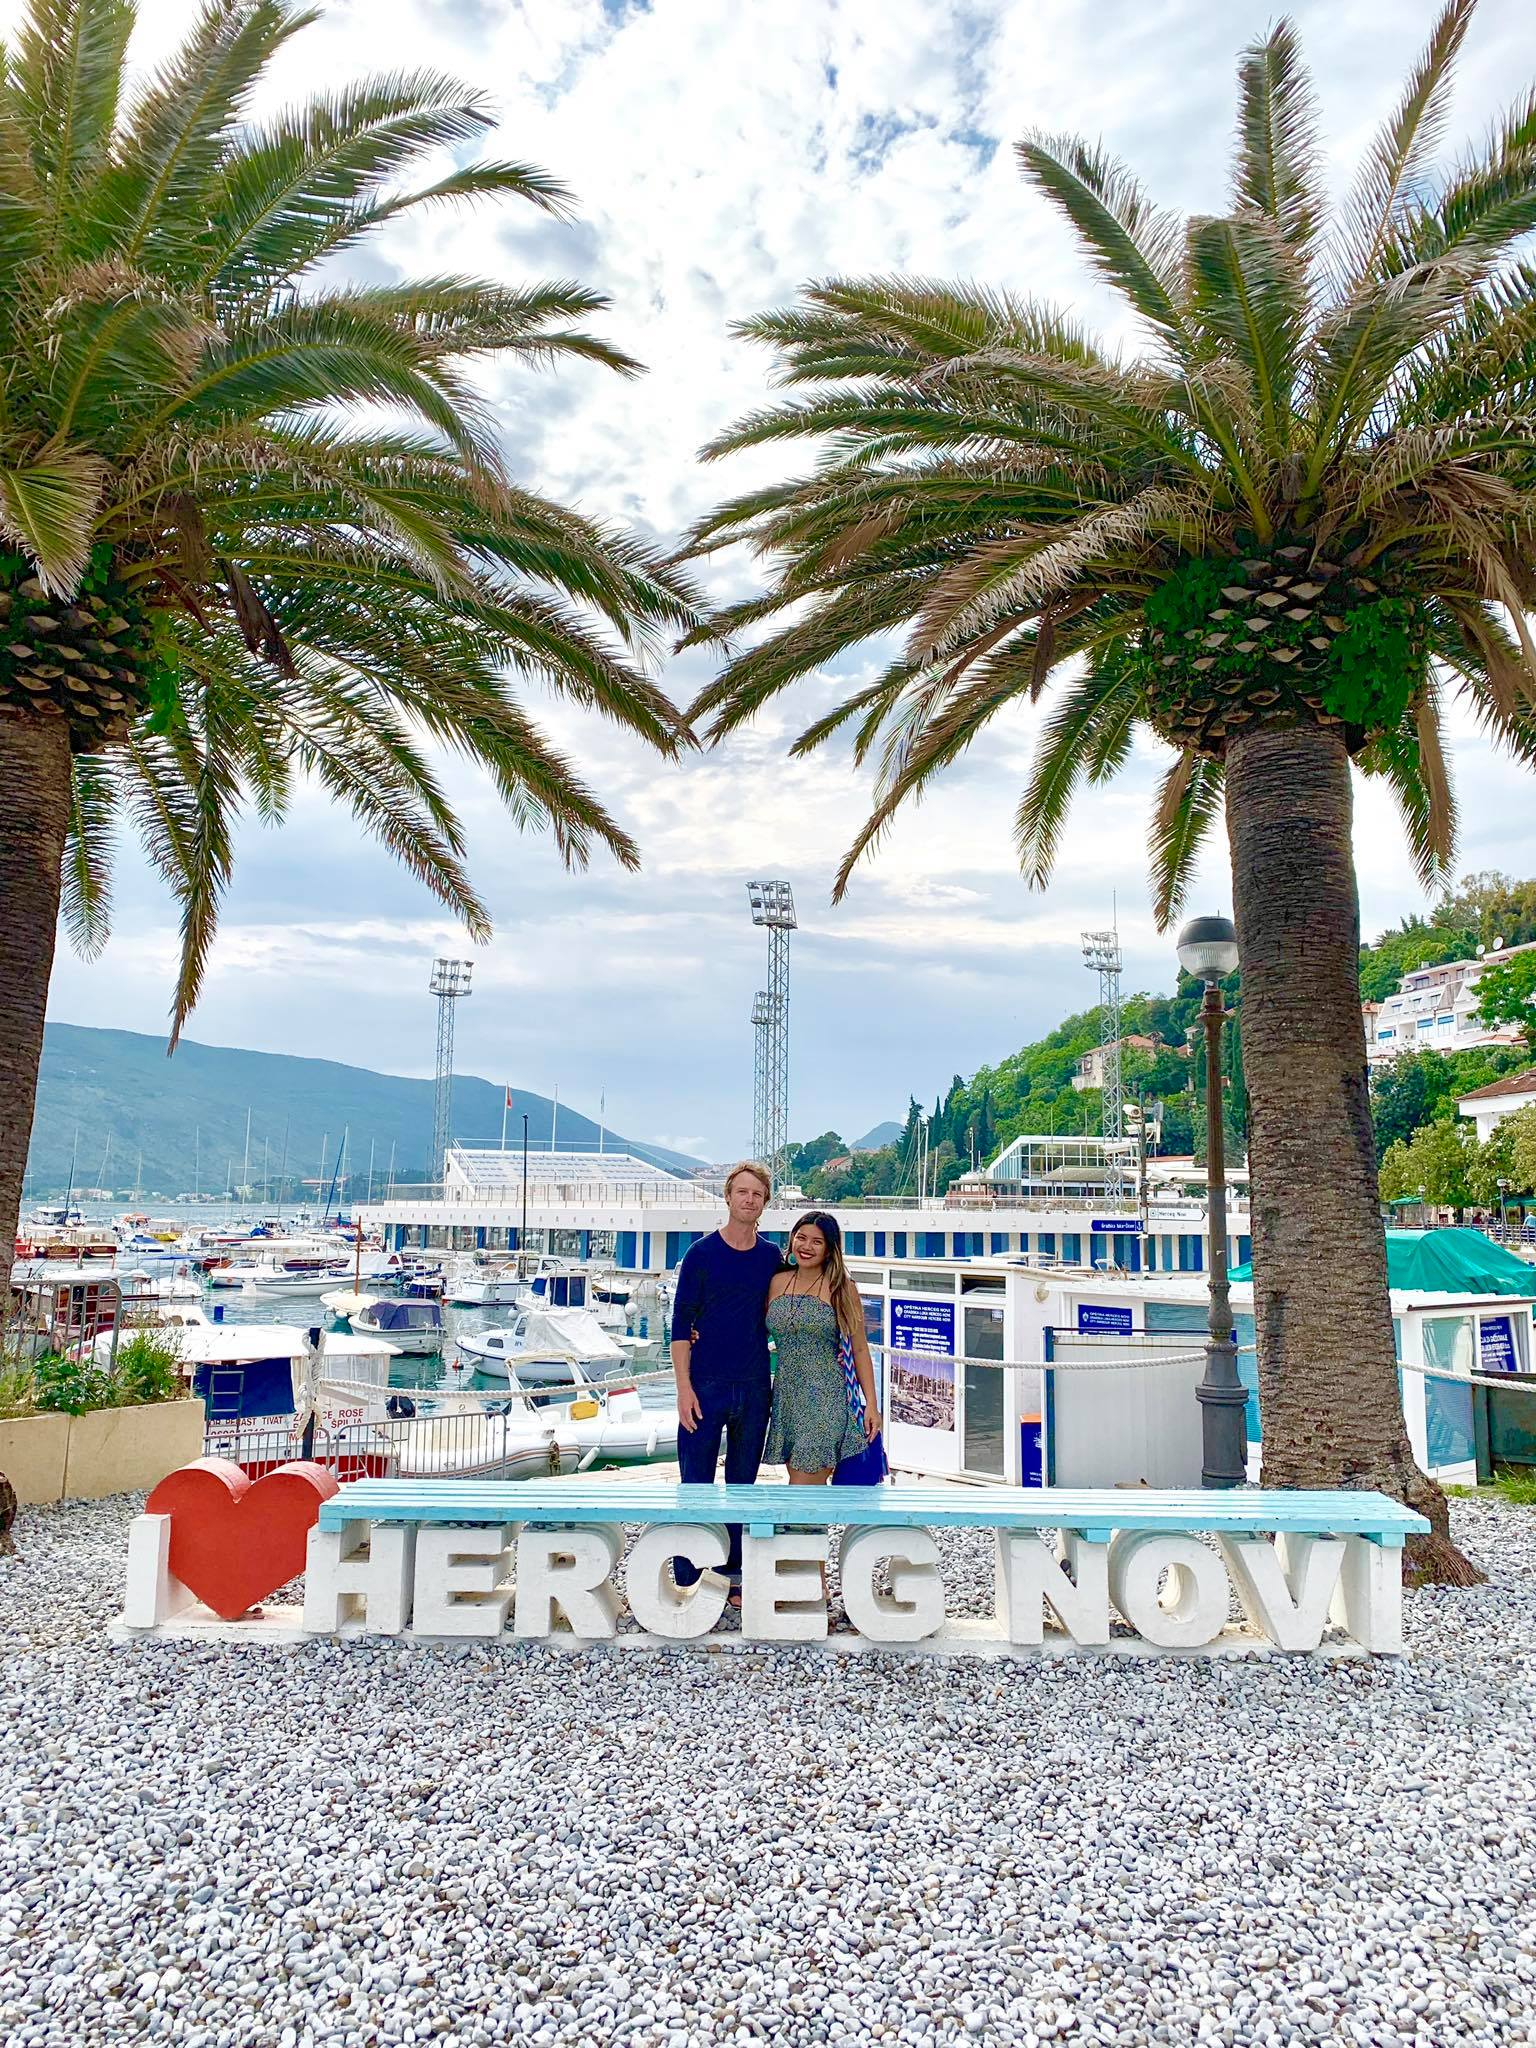 Expat Life in Montenegro Day 3 We have our first visitor already in our new home here in Herceg Novi21.jpg